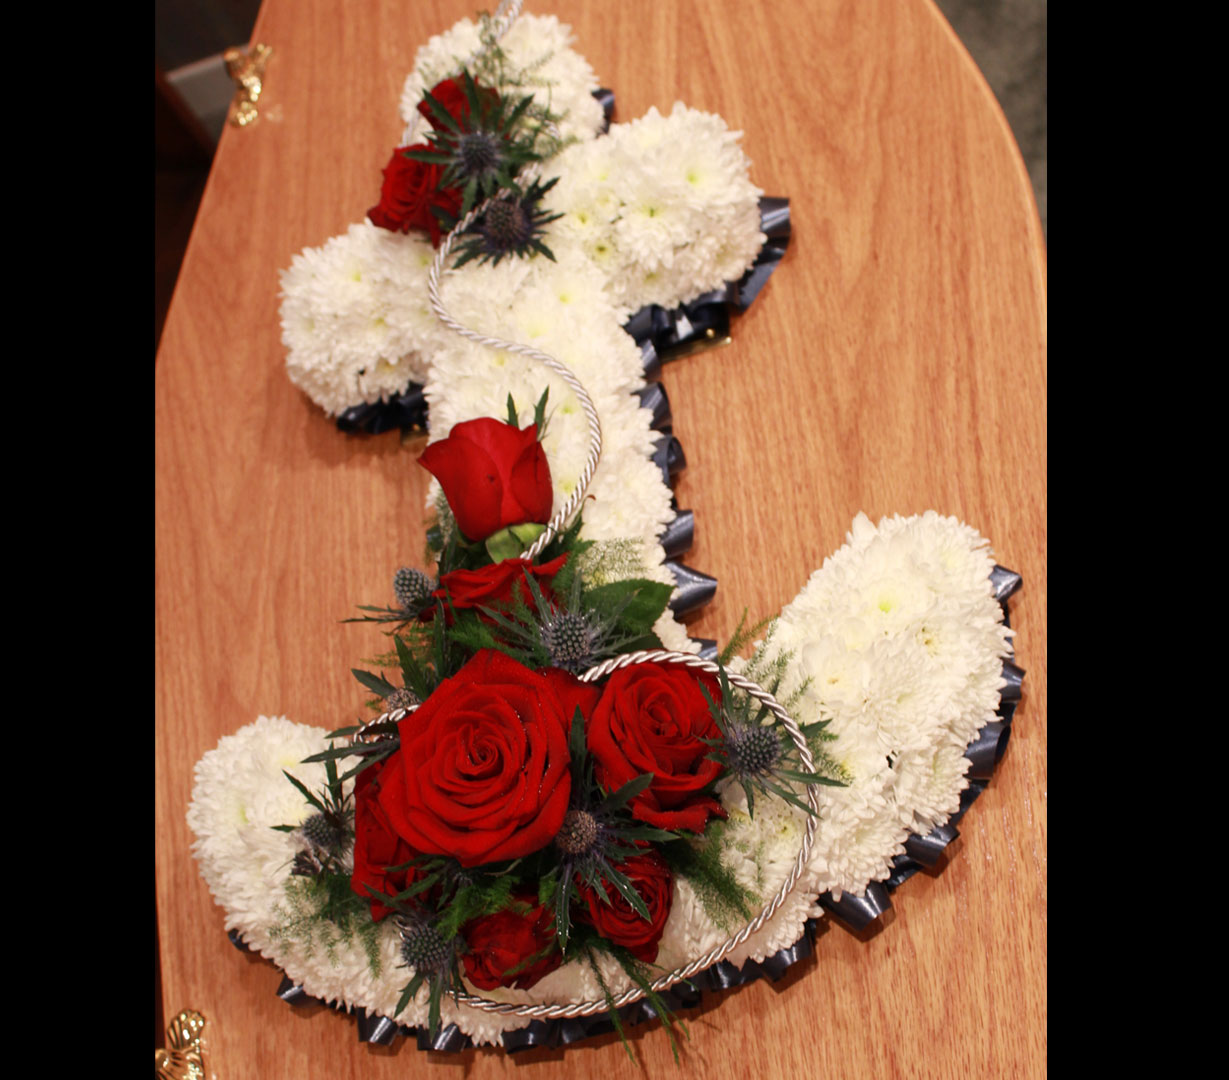 Floral Funeral Tributes White Anchor with Red Roses